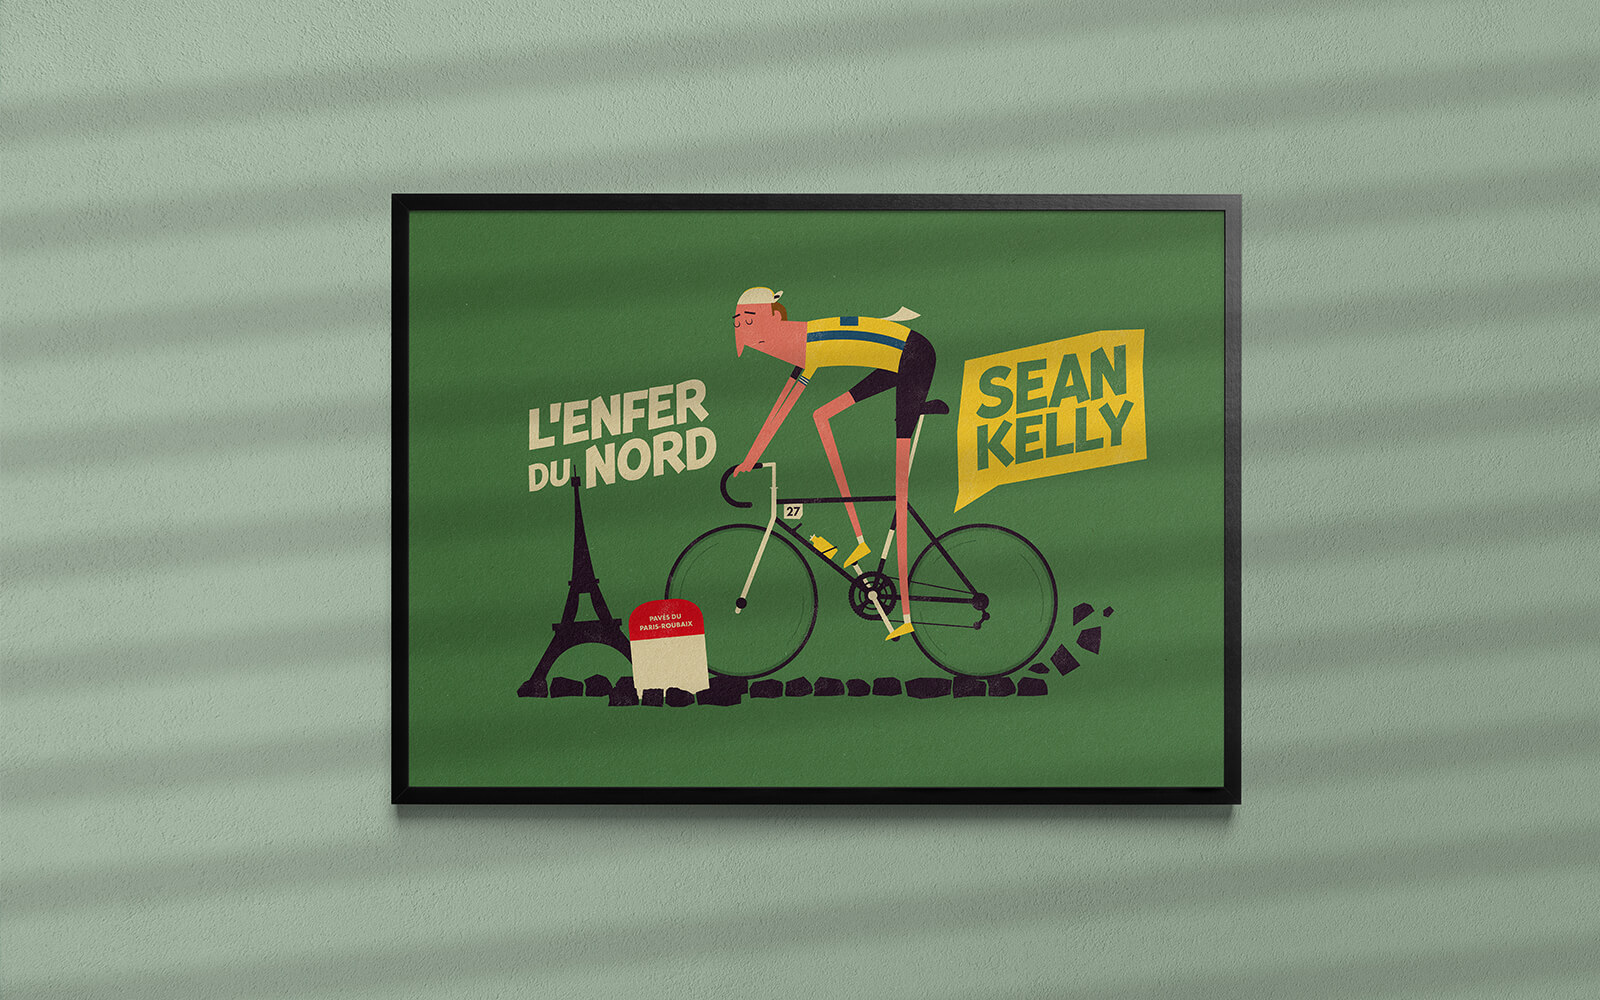 Seankelly